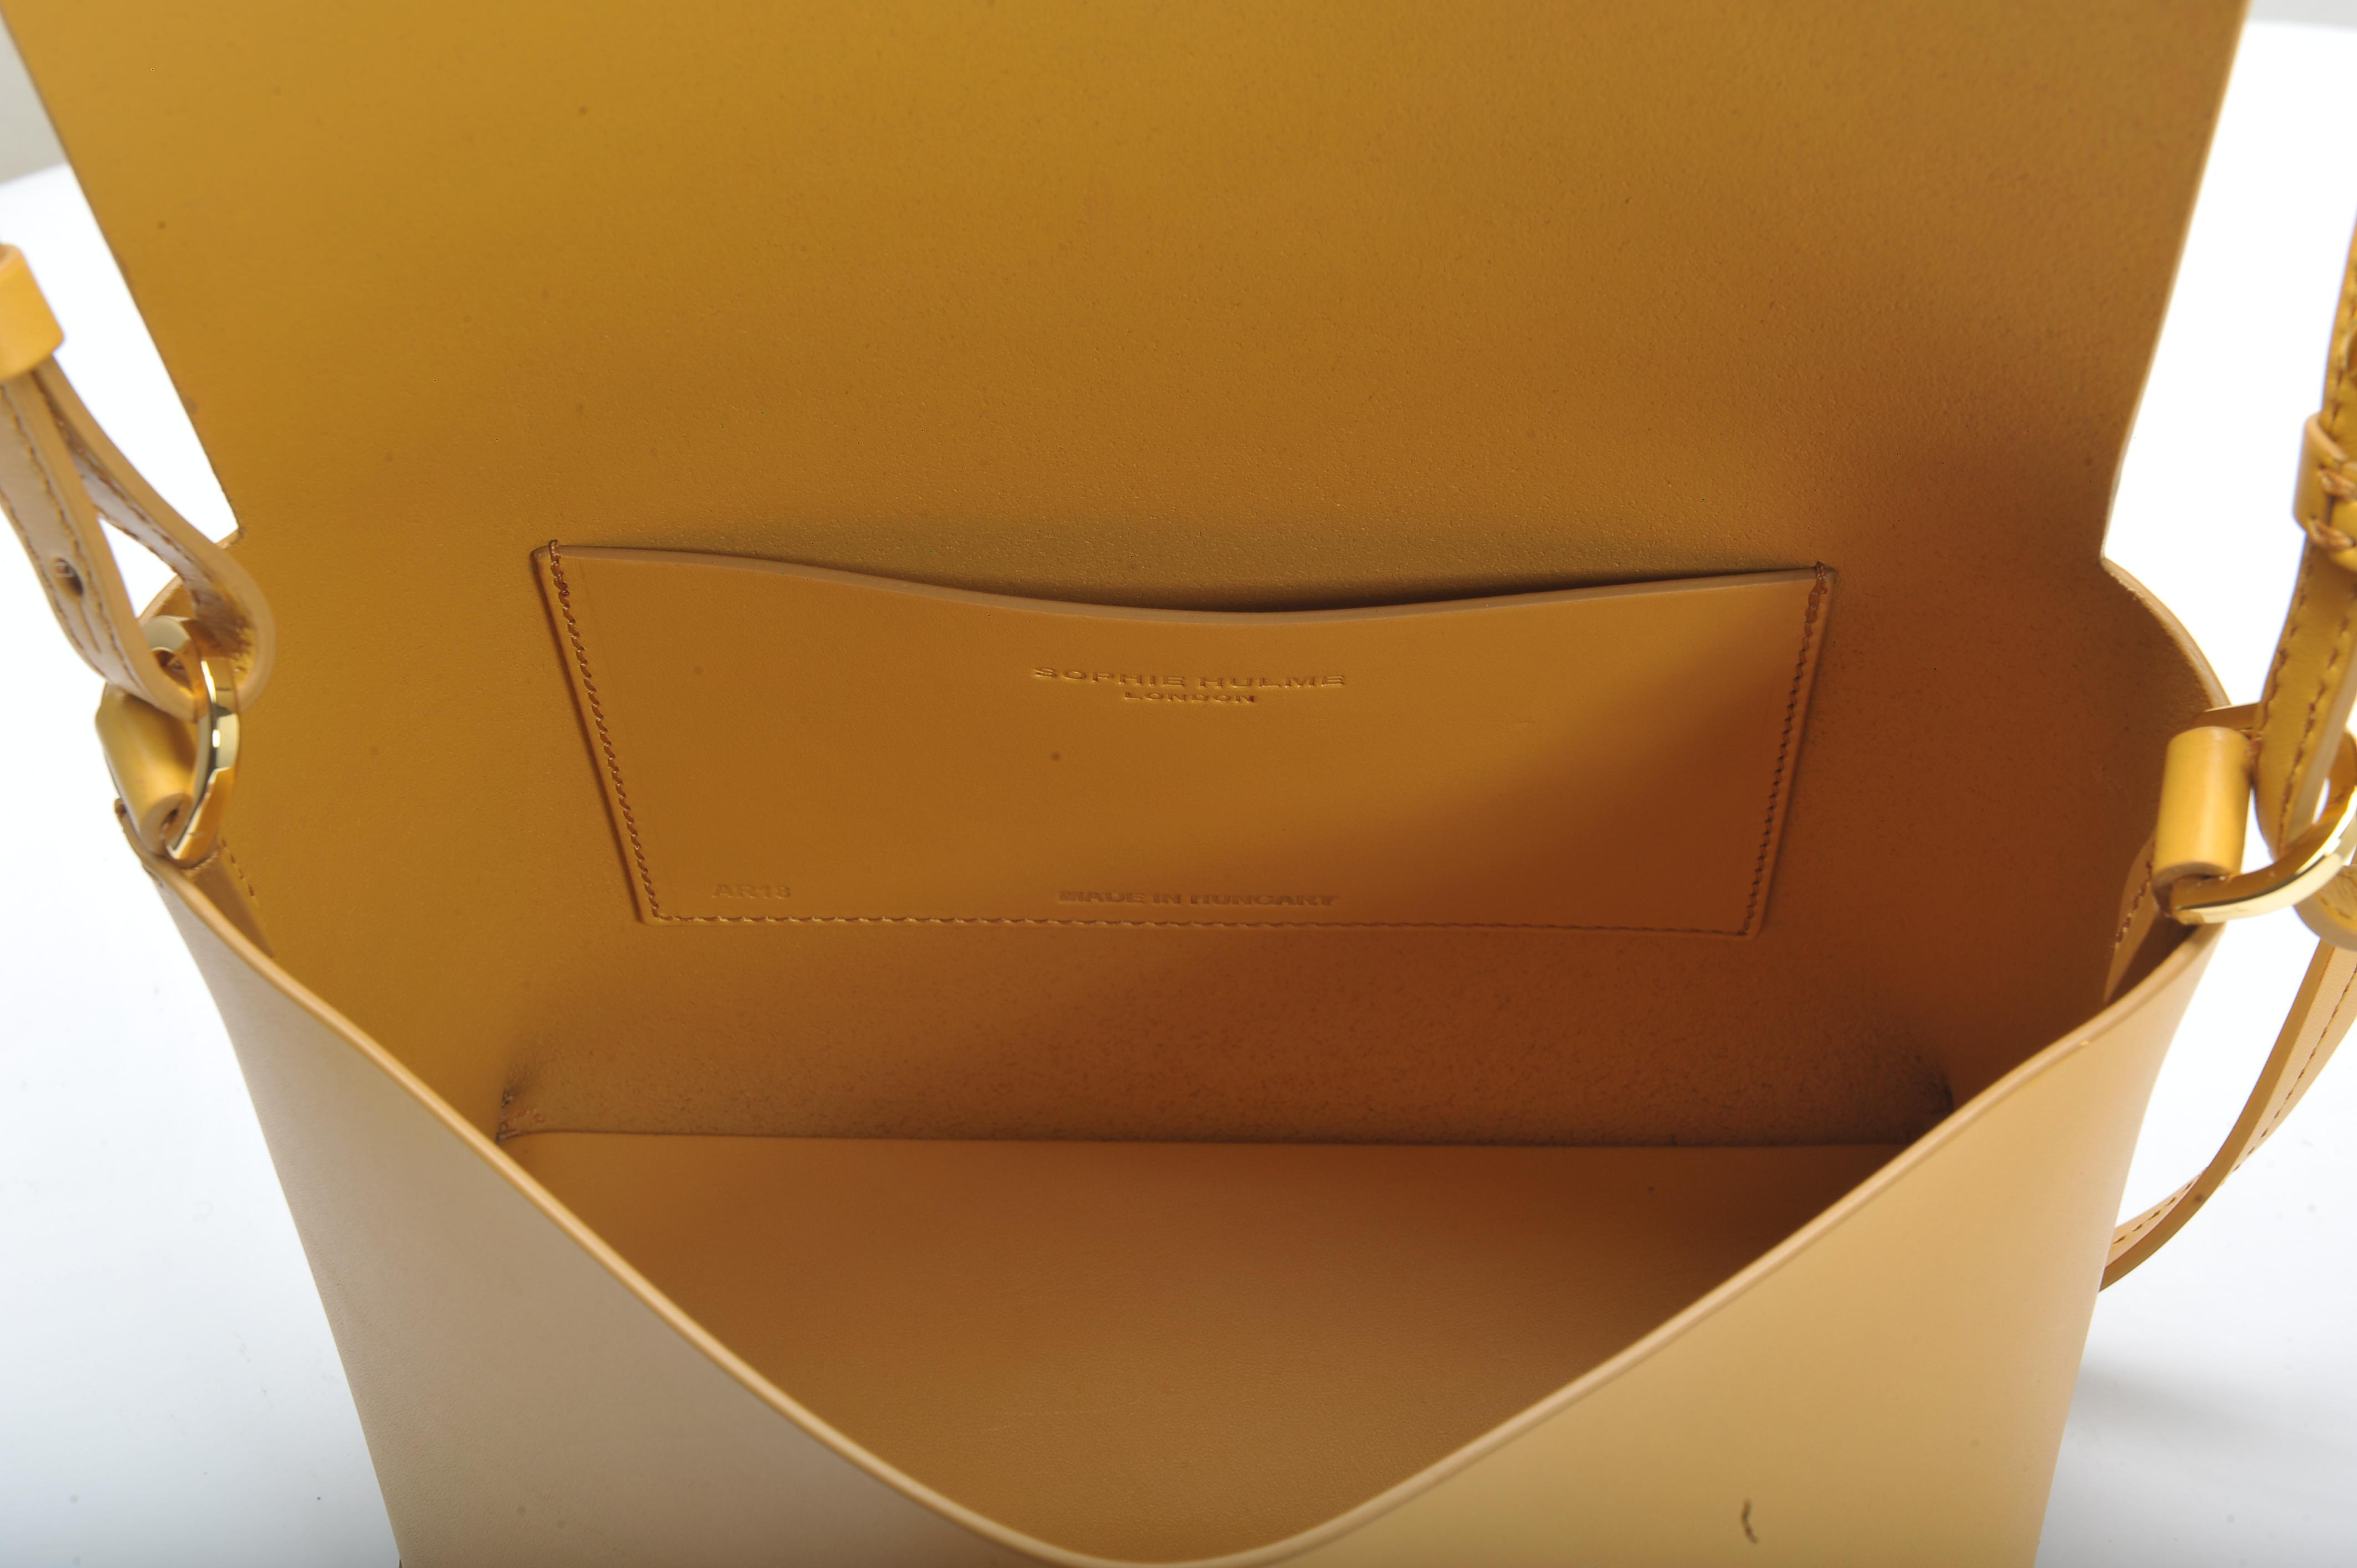 The Pinch Crossbody Bag in Dark Butter Cowhide Leather Sophie Hulme 2NgL0AIT53